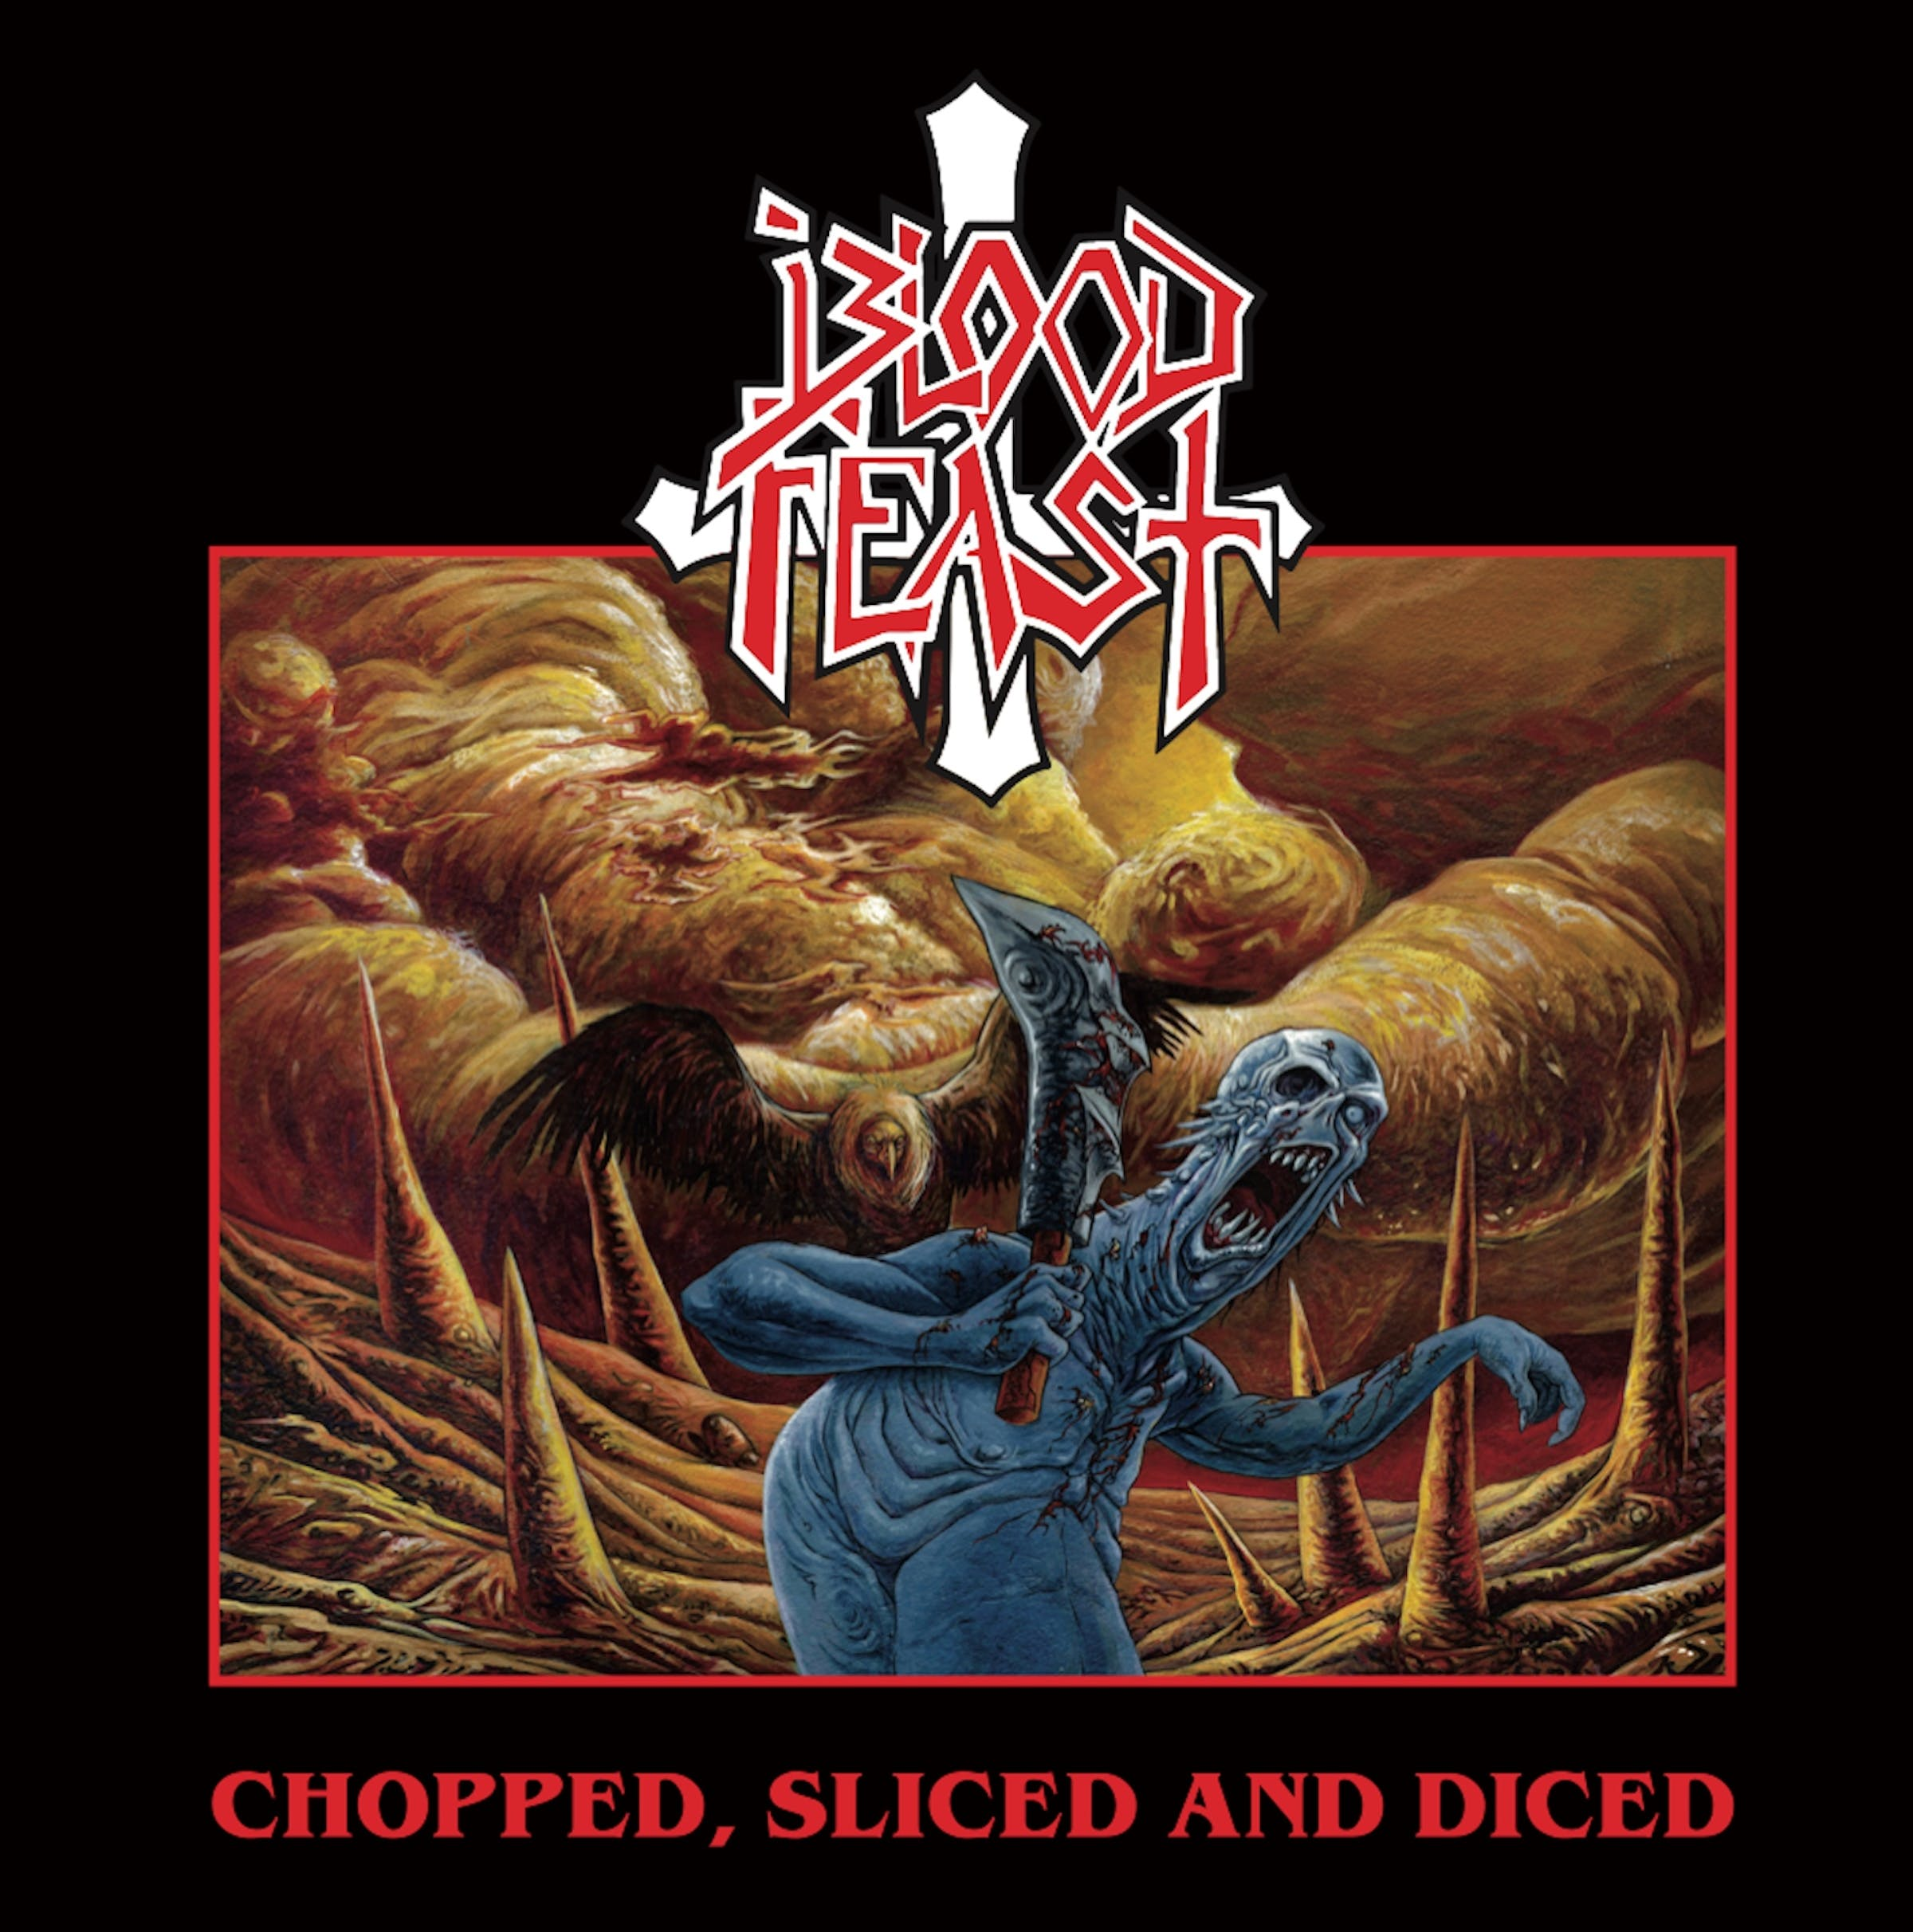 Bloodfeastcover